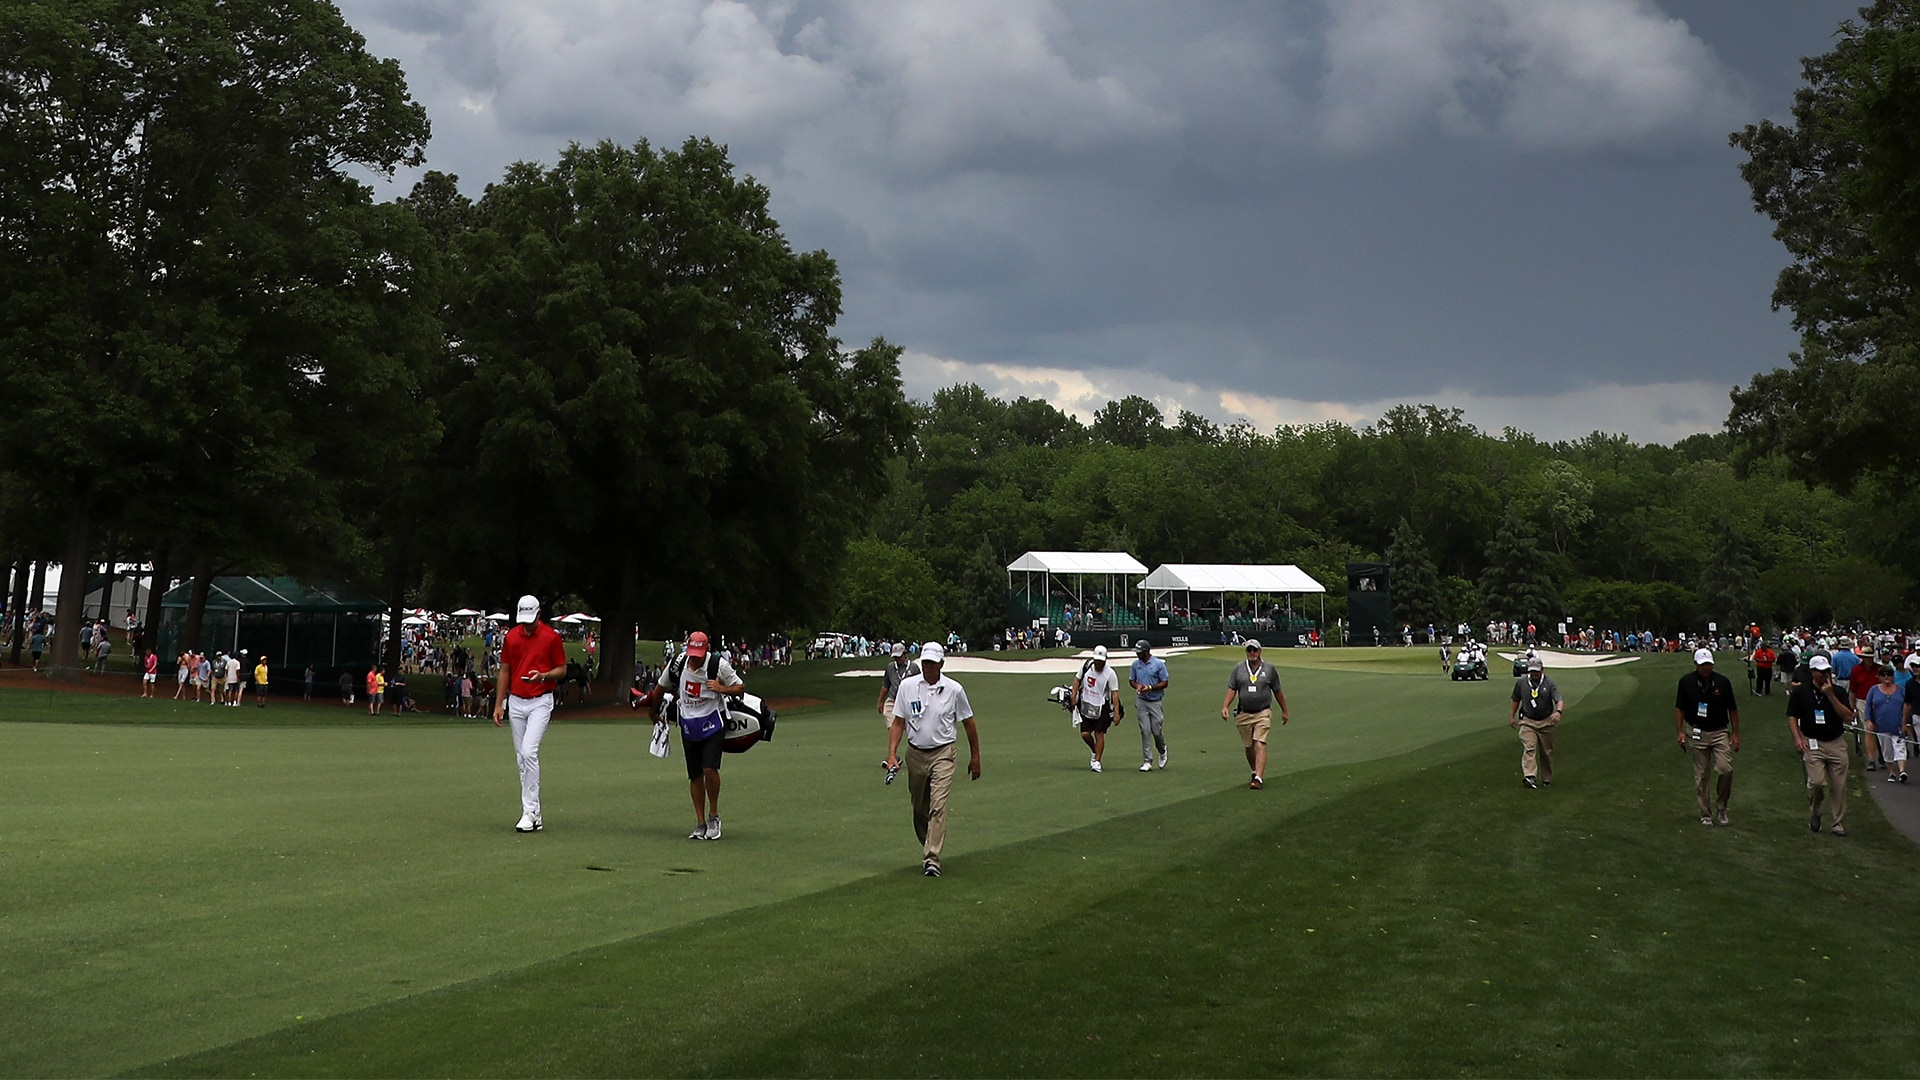 Play halted again because of weather at Wells Fargo | Golf